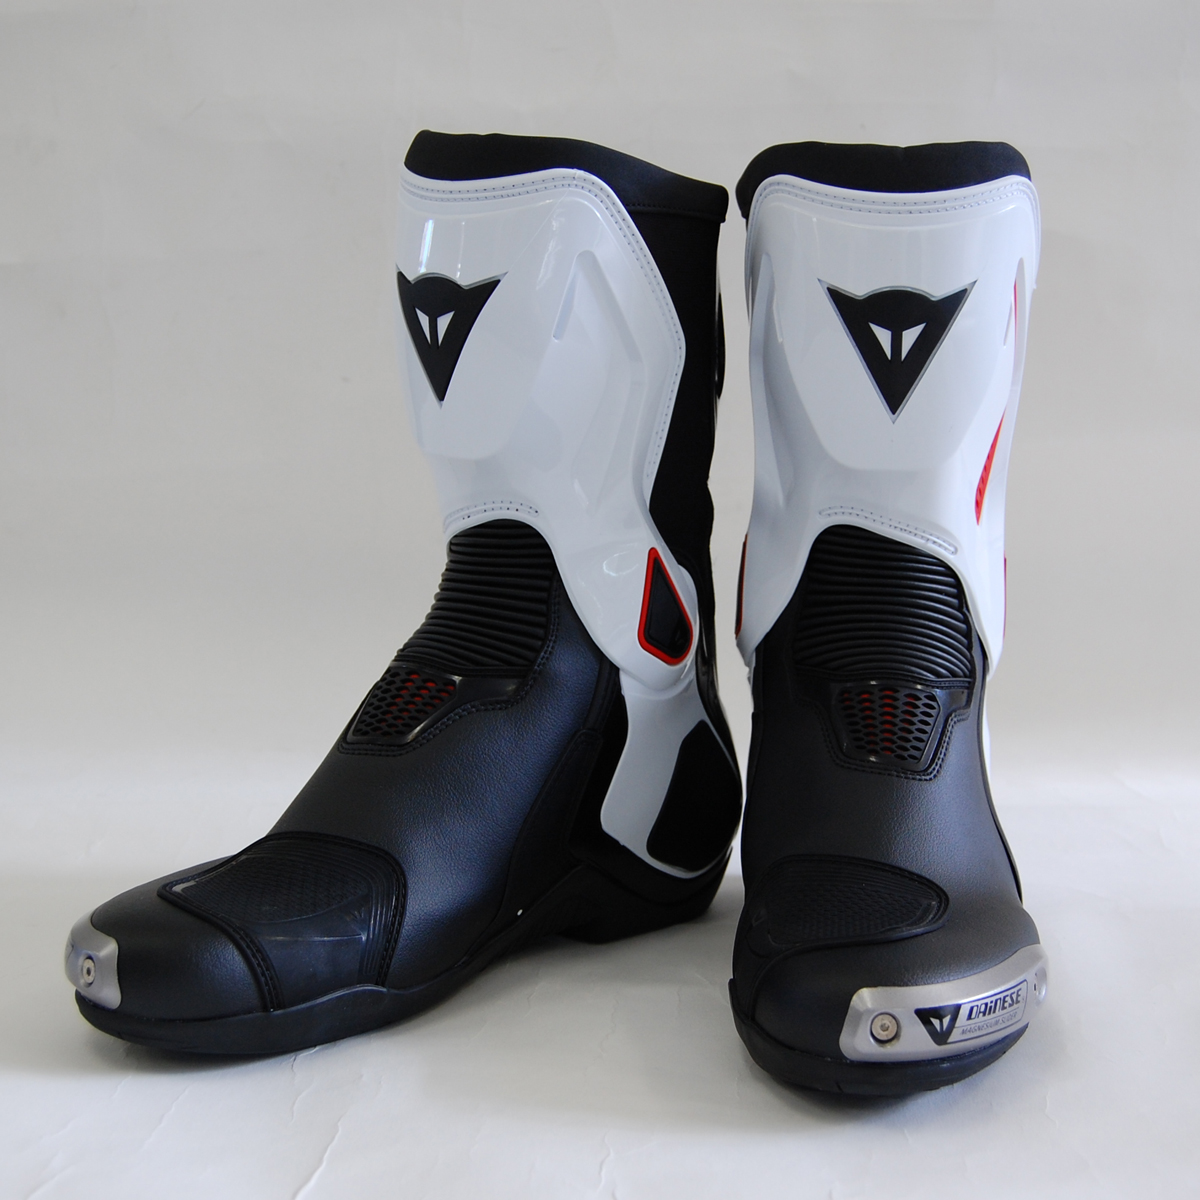 Dainese: レーシングブーツ TORQUE D1 OUT